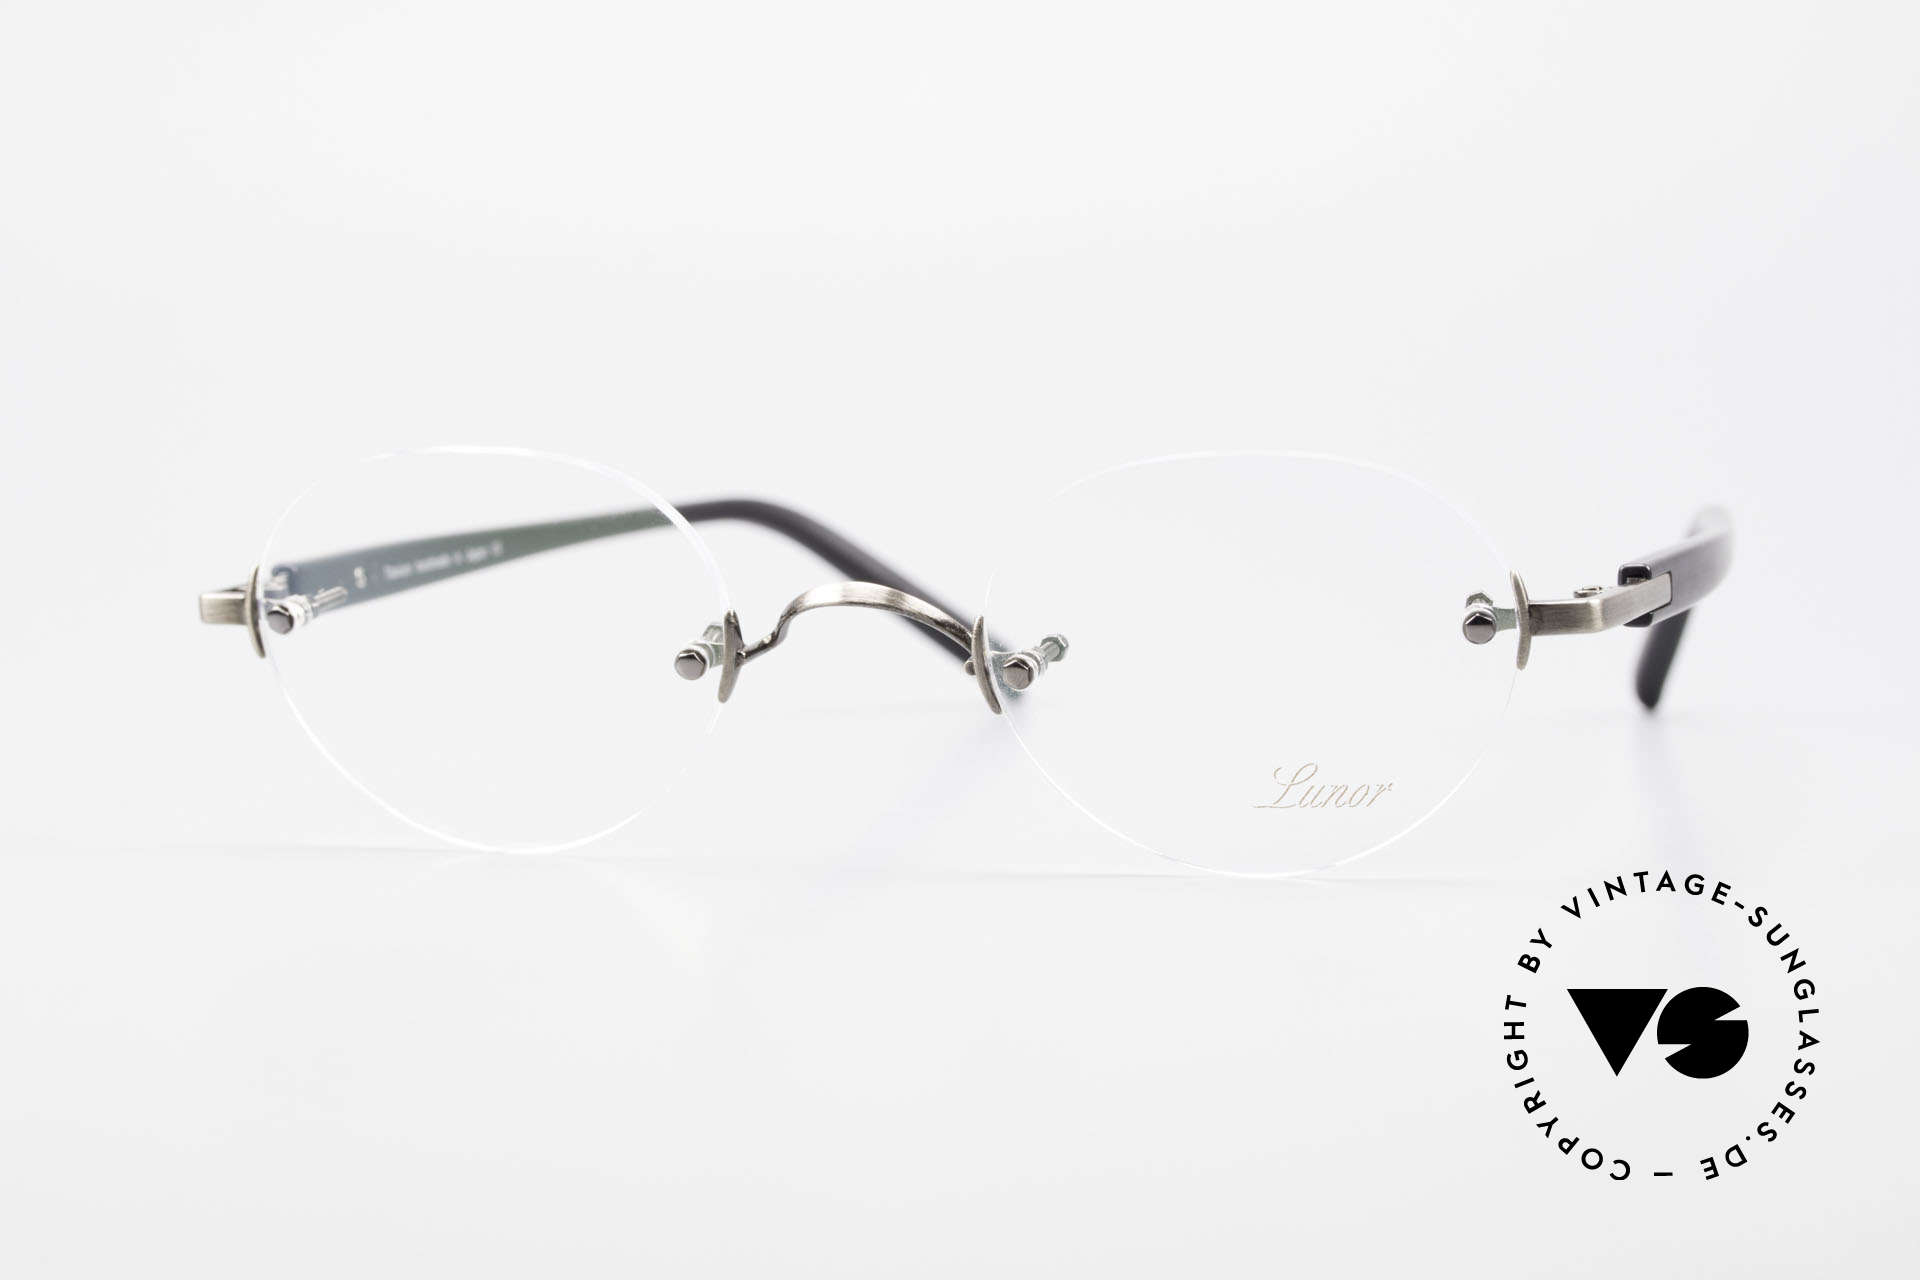 Lunor Classic Panto AS Panto Rimless Frame Unisex, LUNOR: honest craftsmanship with attention to details, Made for Men and Women